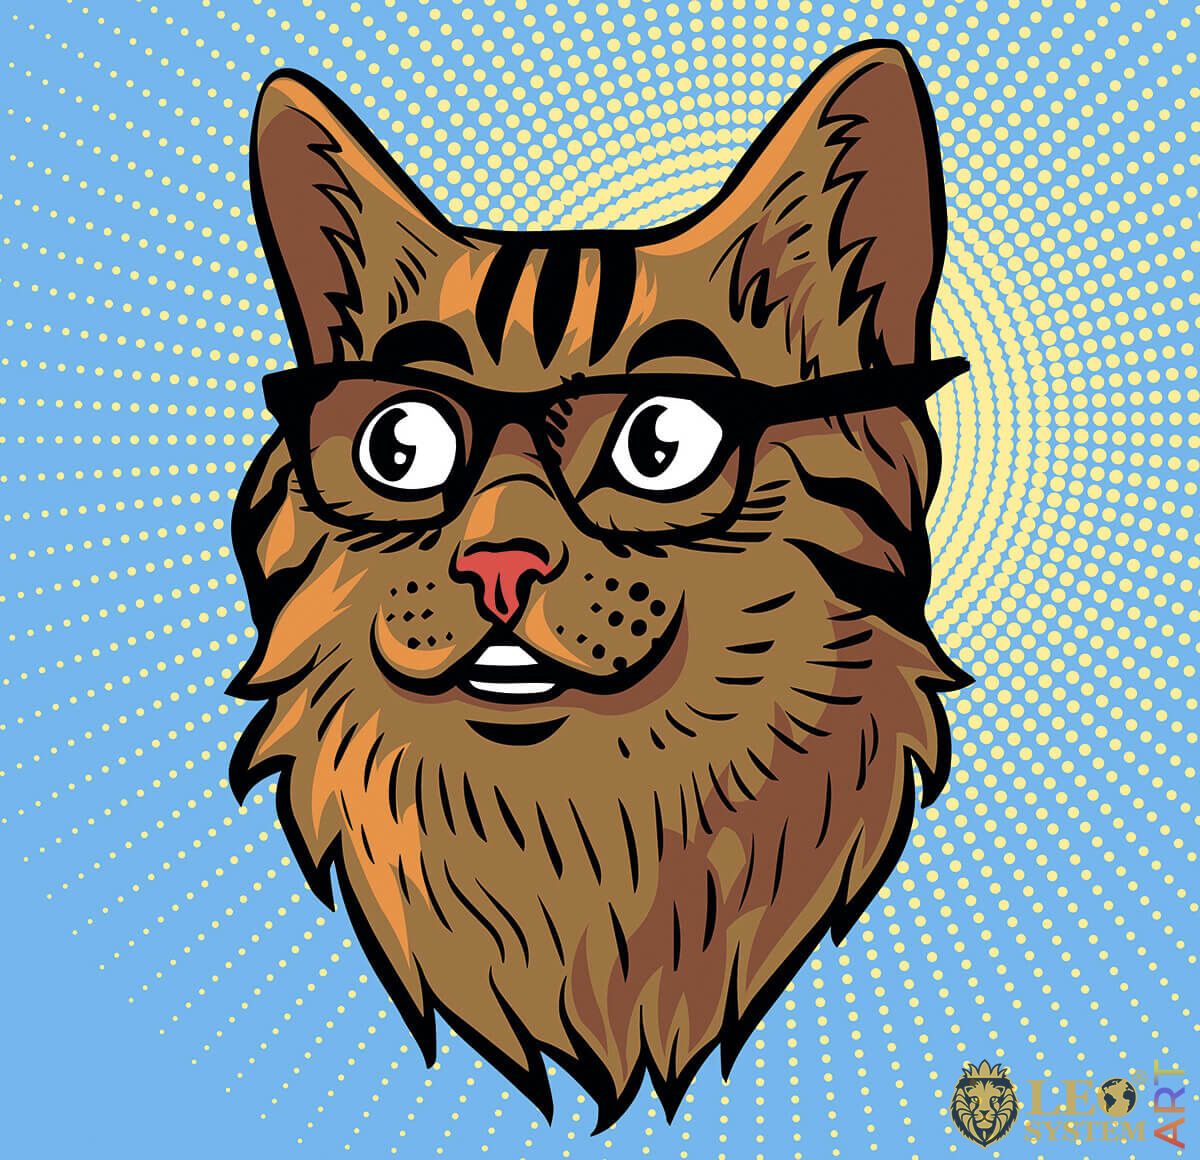 Picture of a smart cat with glasses